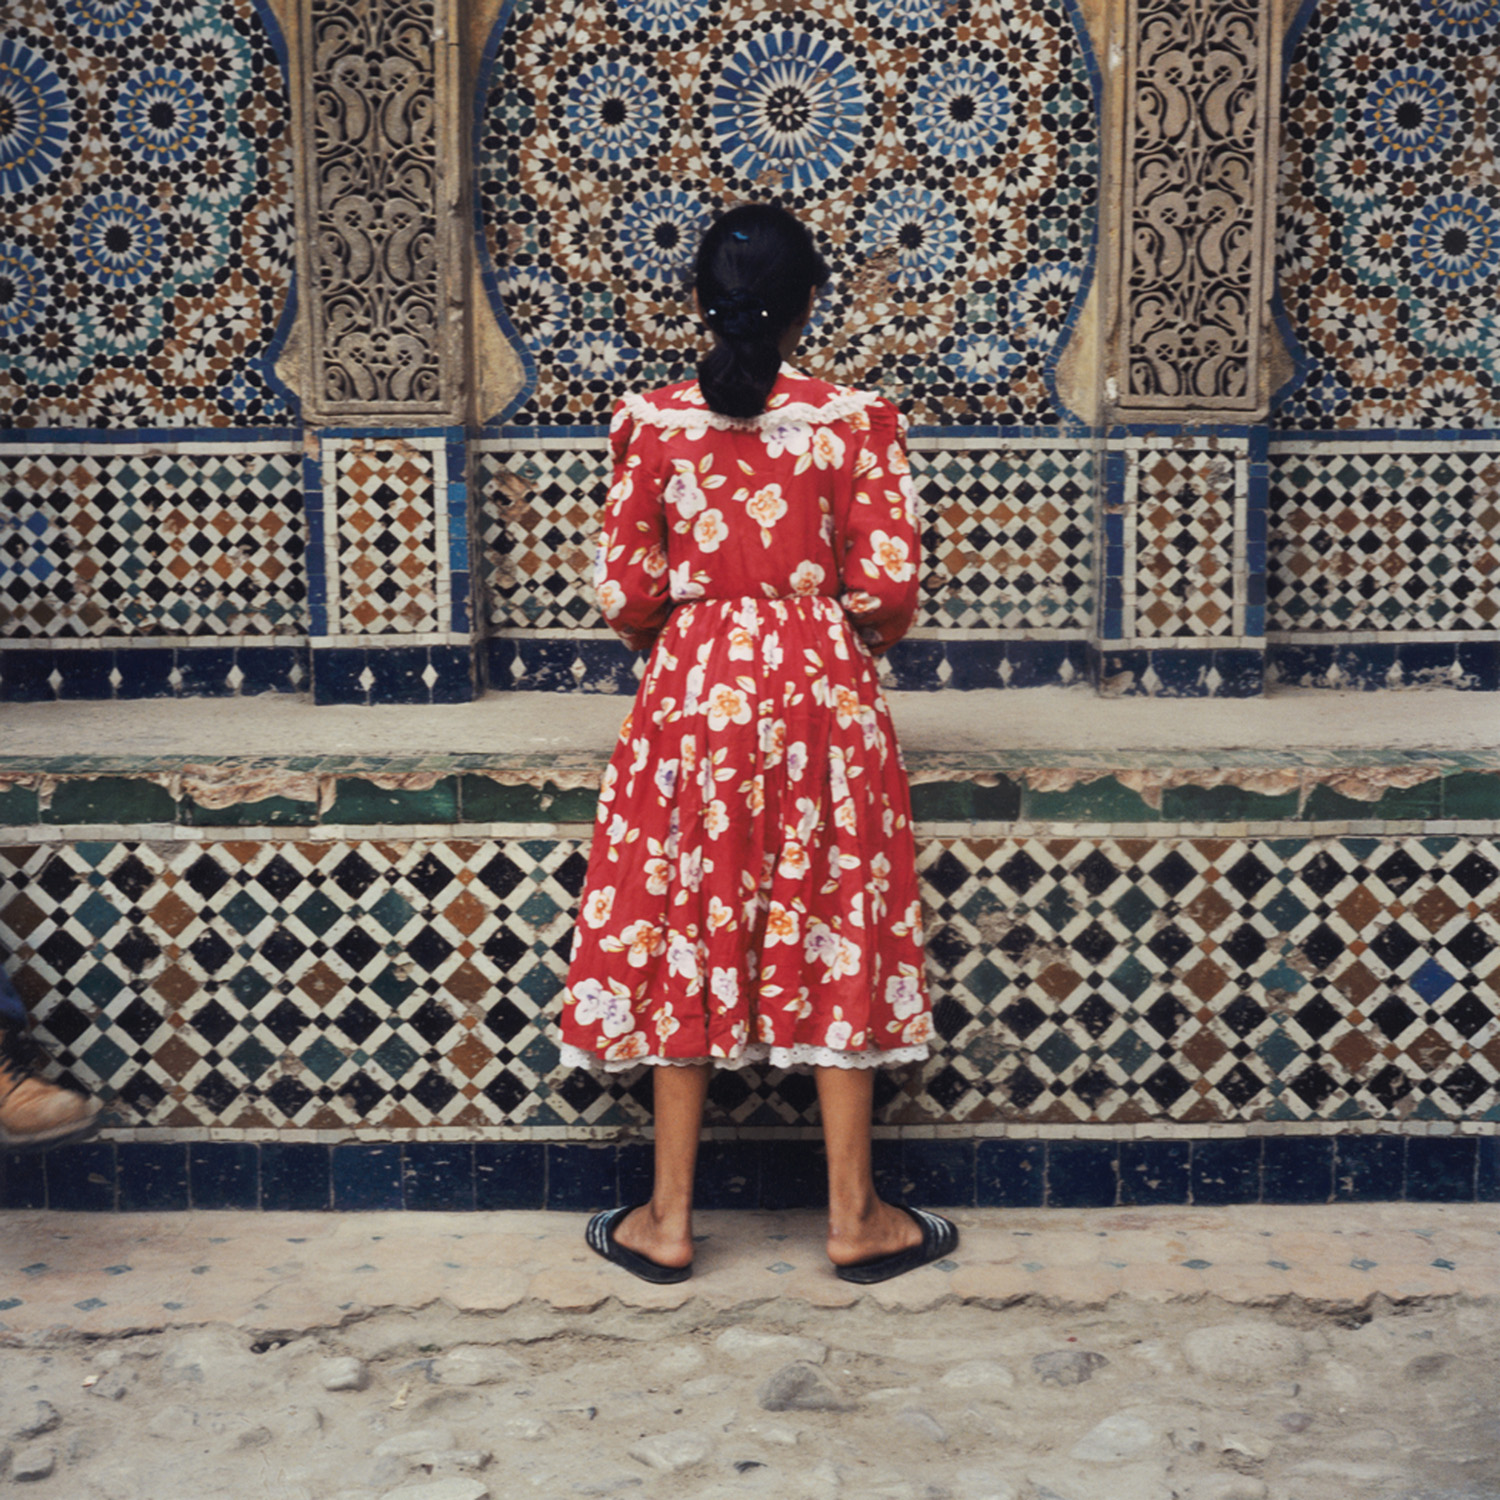 A color photo of a woman facing a wall with Islamic style tile work. She is wearing a red and white floral patterned dress.